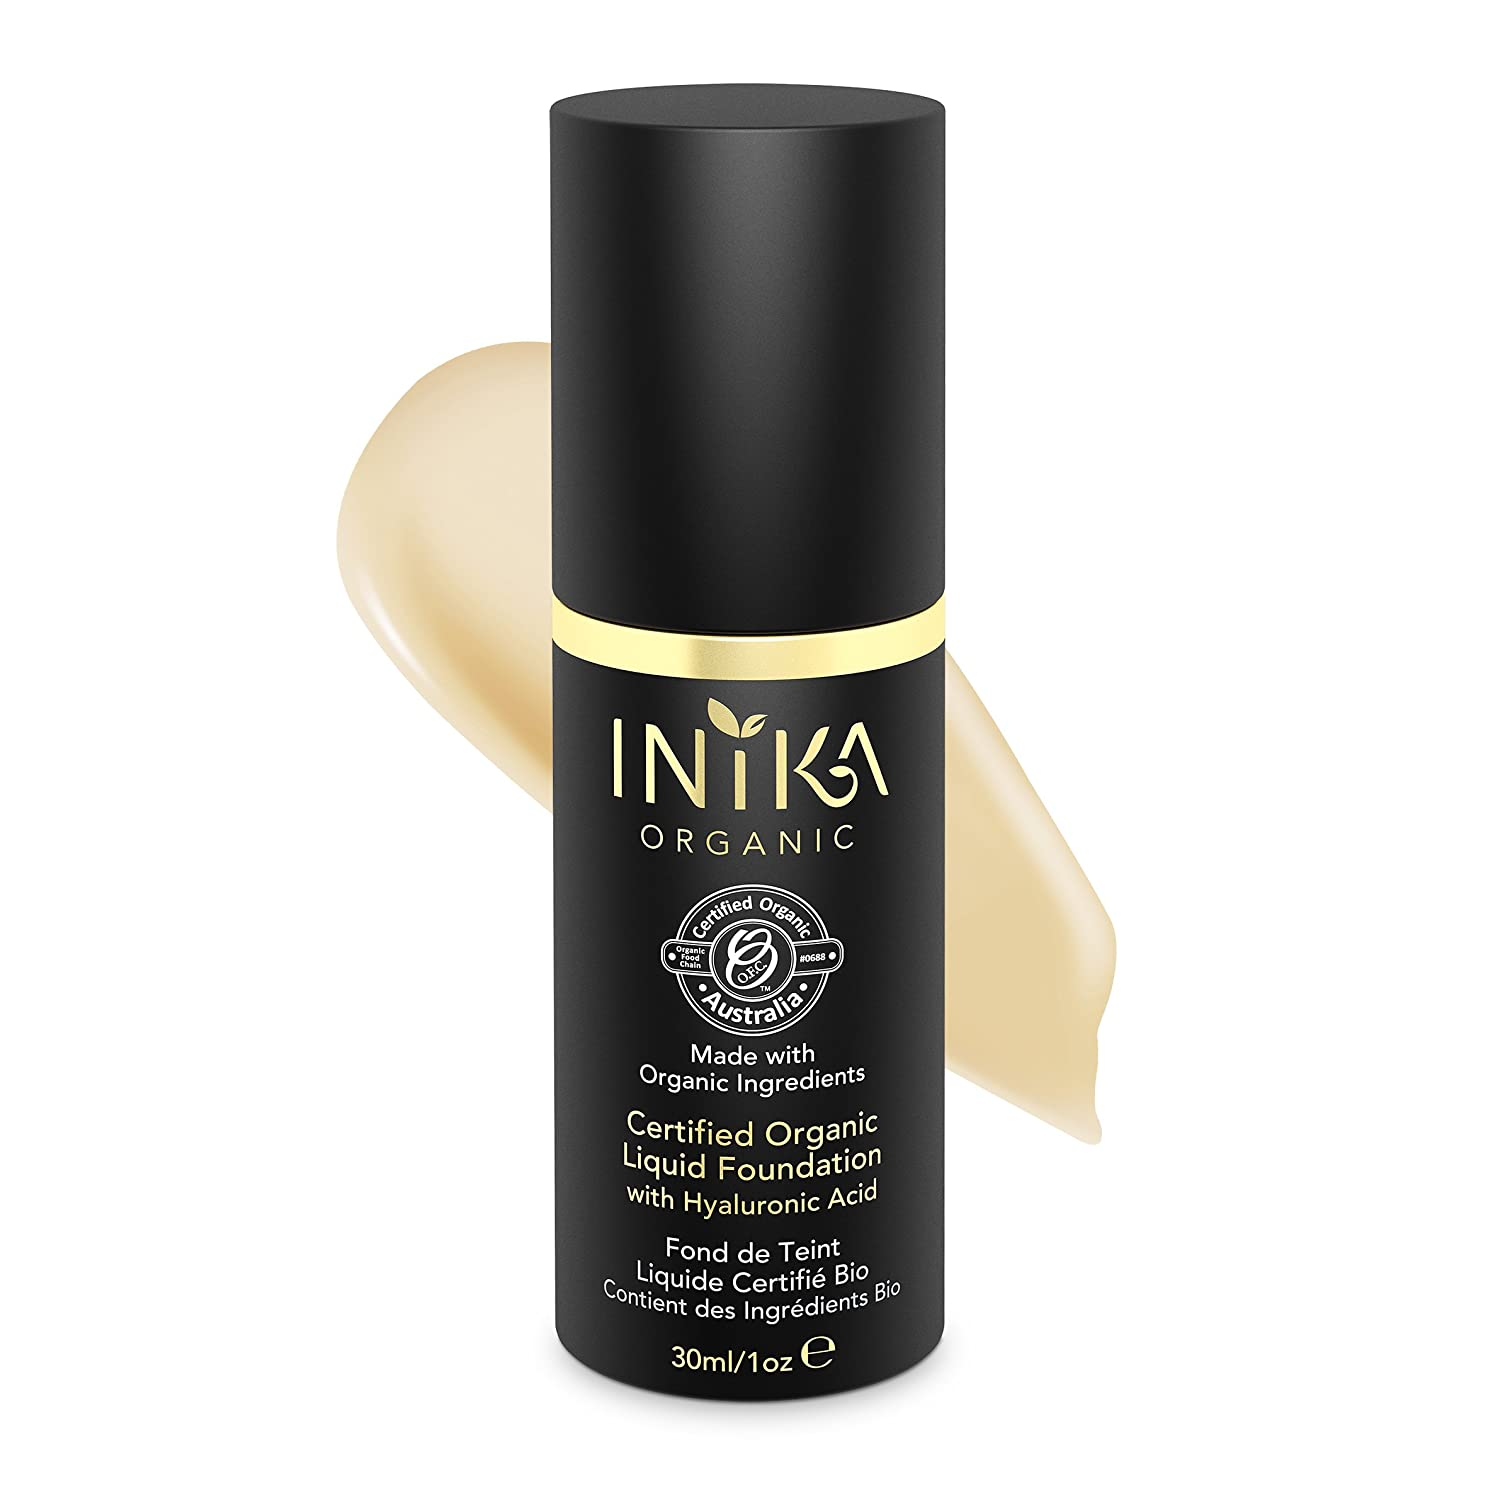 30d5405ba72 Amazon.com : INIKA Certified Organic Liquid Foundation with Hyaluronic Acid  All Natural Make-up Base, Flawless Long-Lasting Coverage, Lightweight, ...